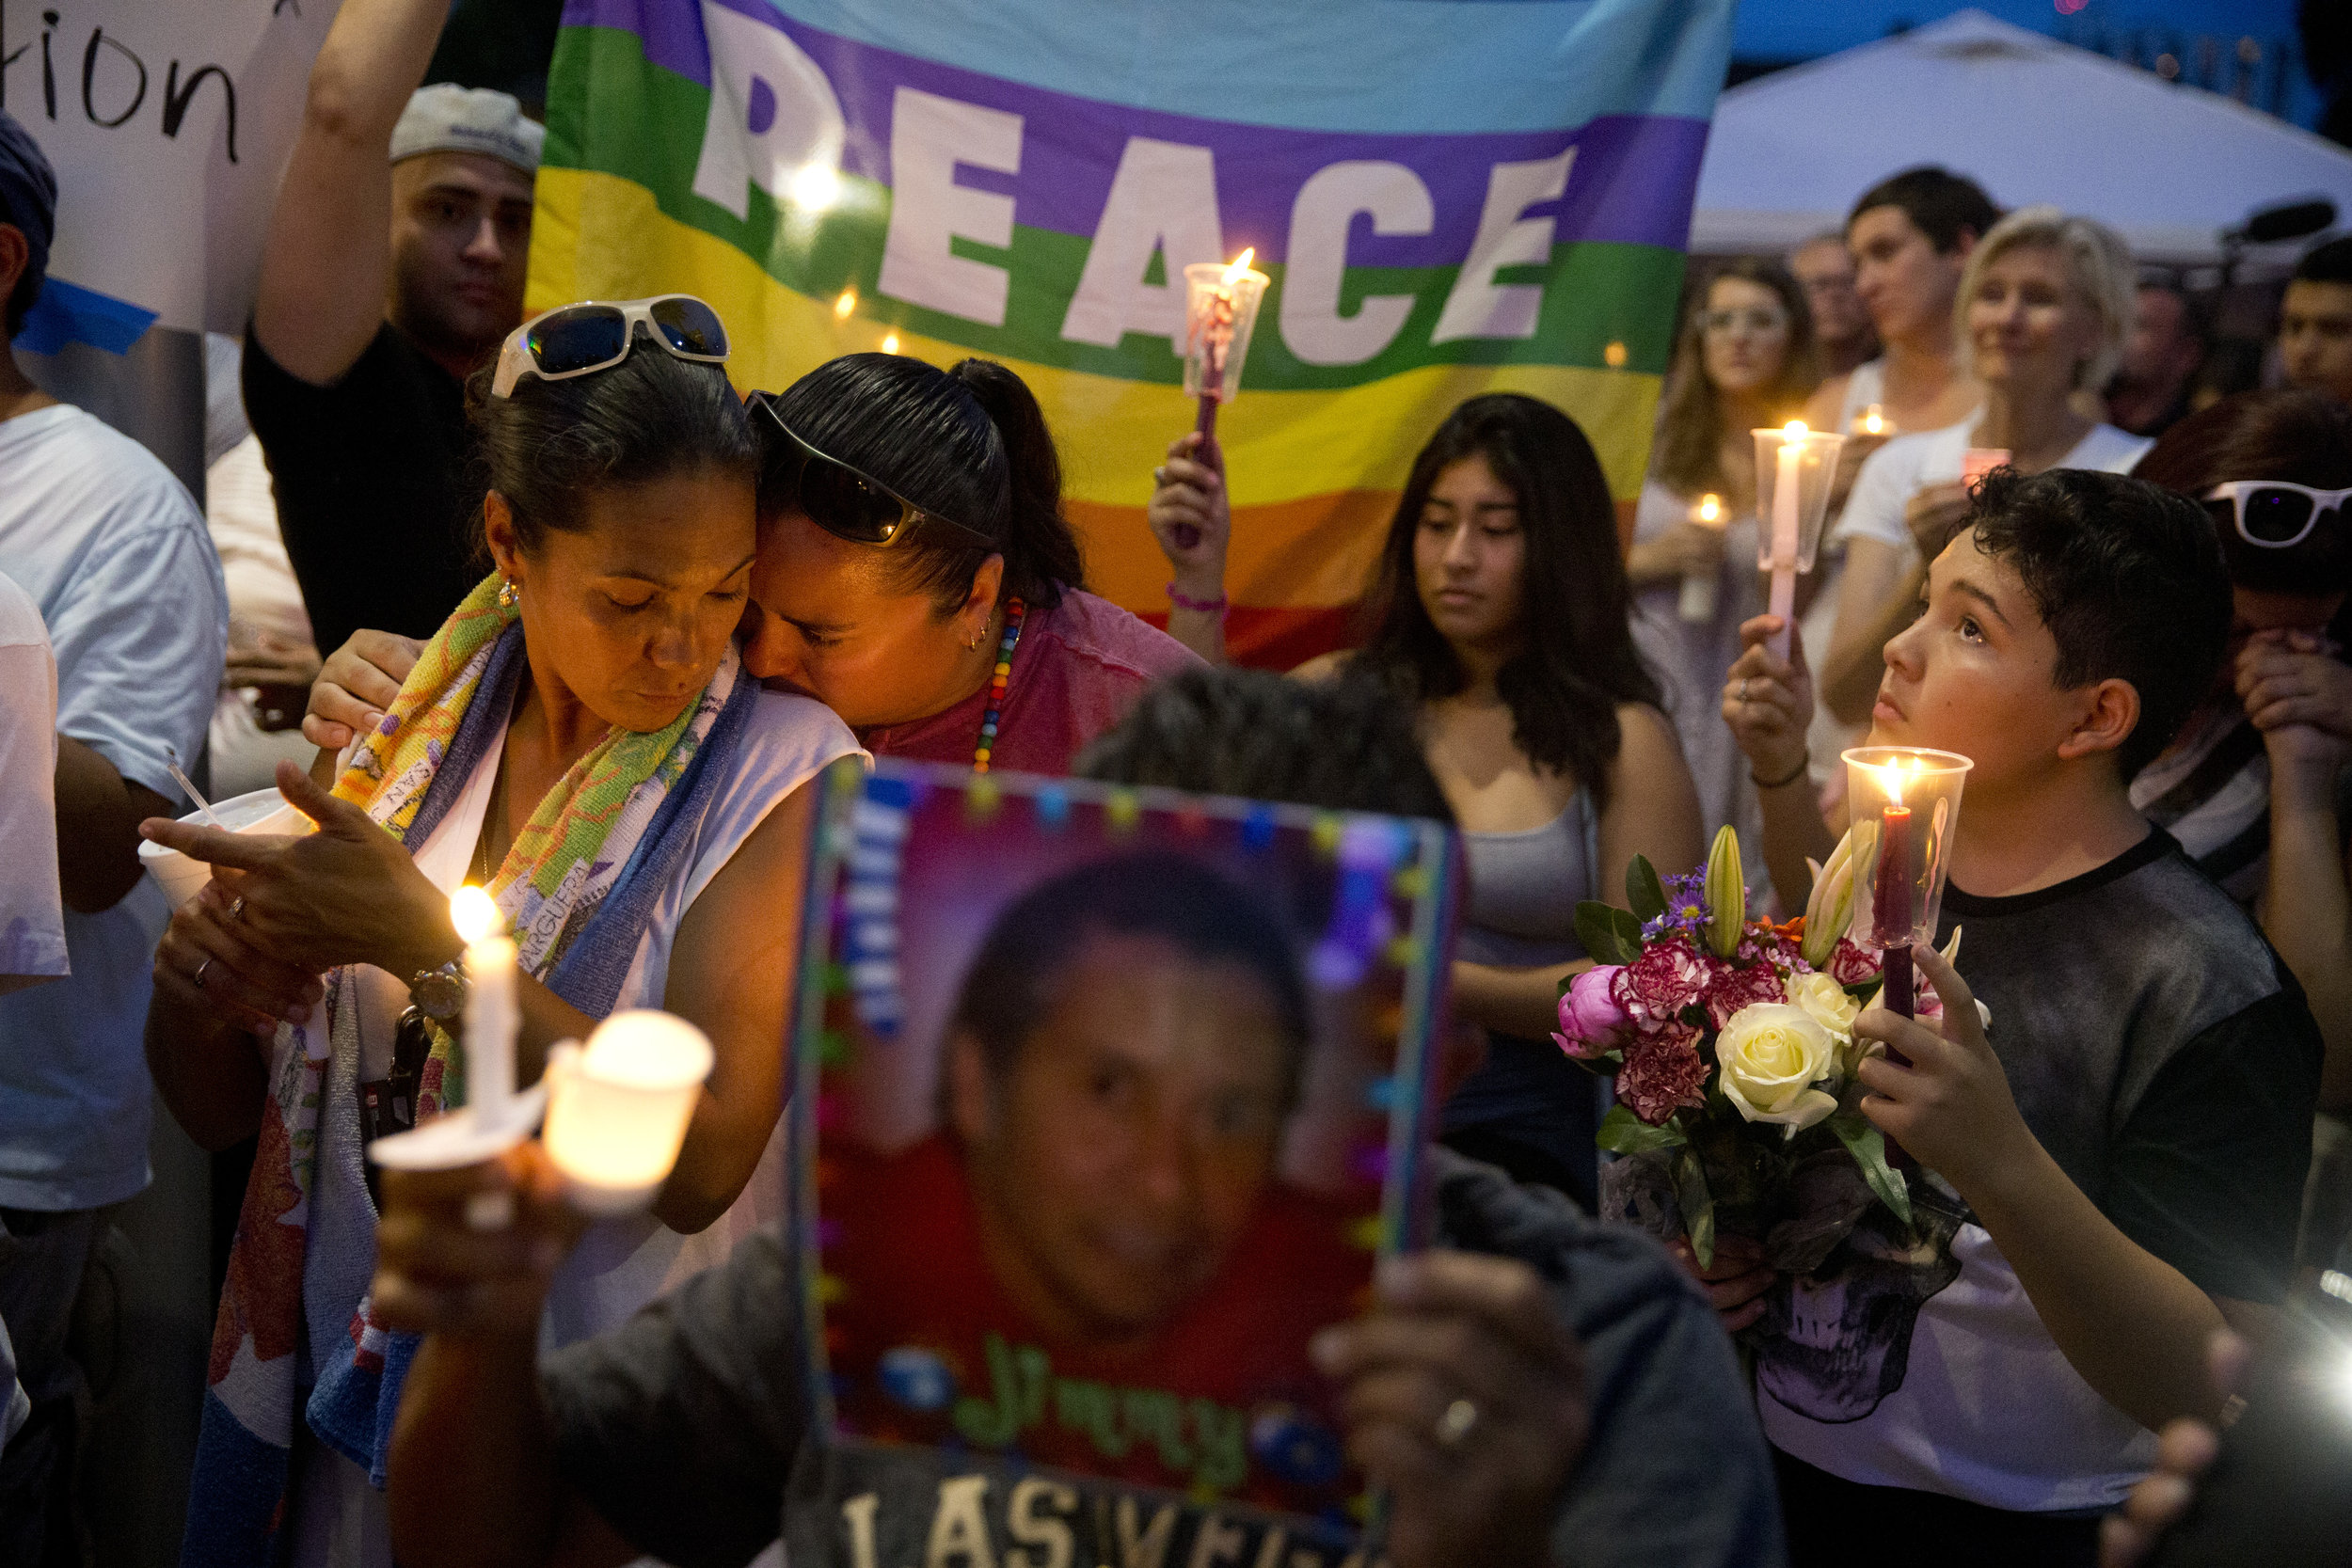 """Jessie Perez, far left, nuzzles against her girlfriend Gina Travez, left, as church bells are rung 49 times for the 49 victims of the Orlando Nightclub shooting at the Dr. Phillips Center for the Performing Arts Monday, June 13, 2016 in Orlando, Fla. """"This is our home,"""" Jessie said. """"That's why it hurts so much."""""""